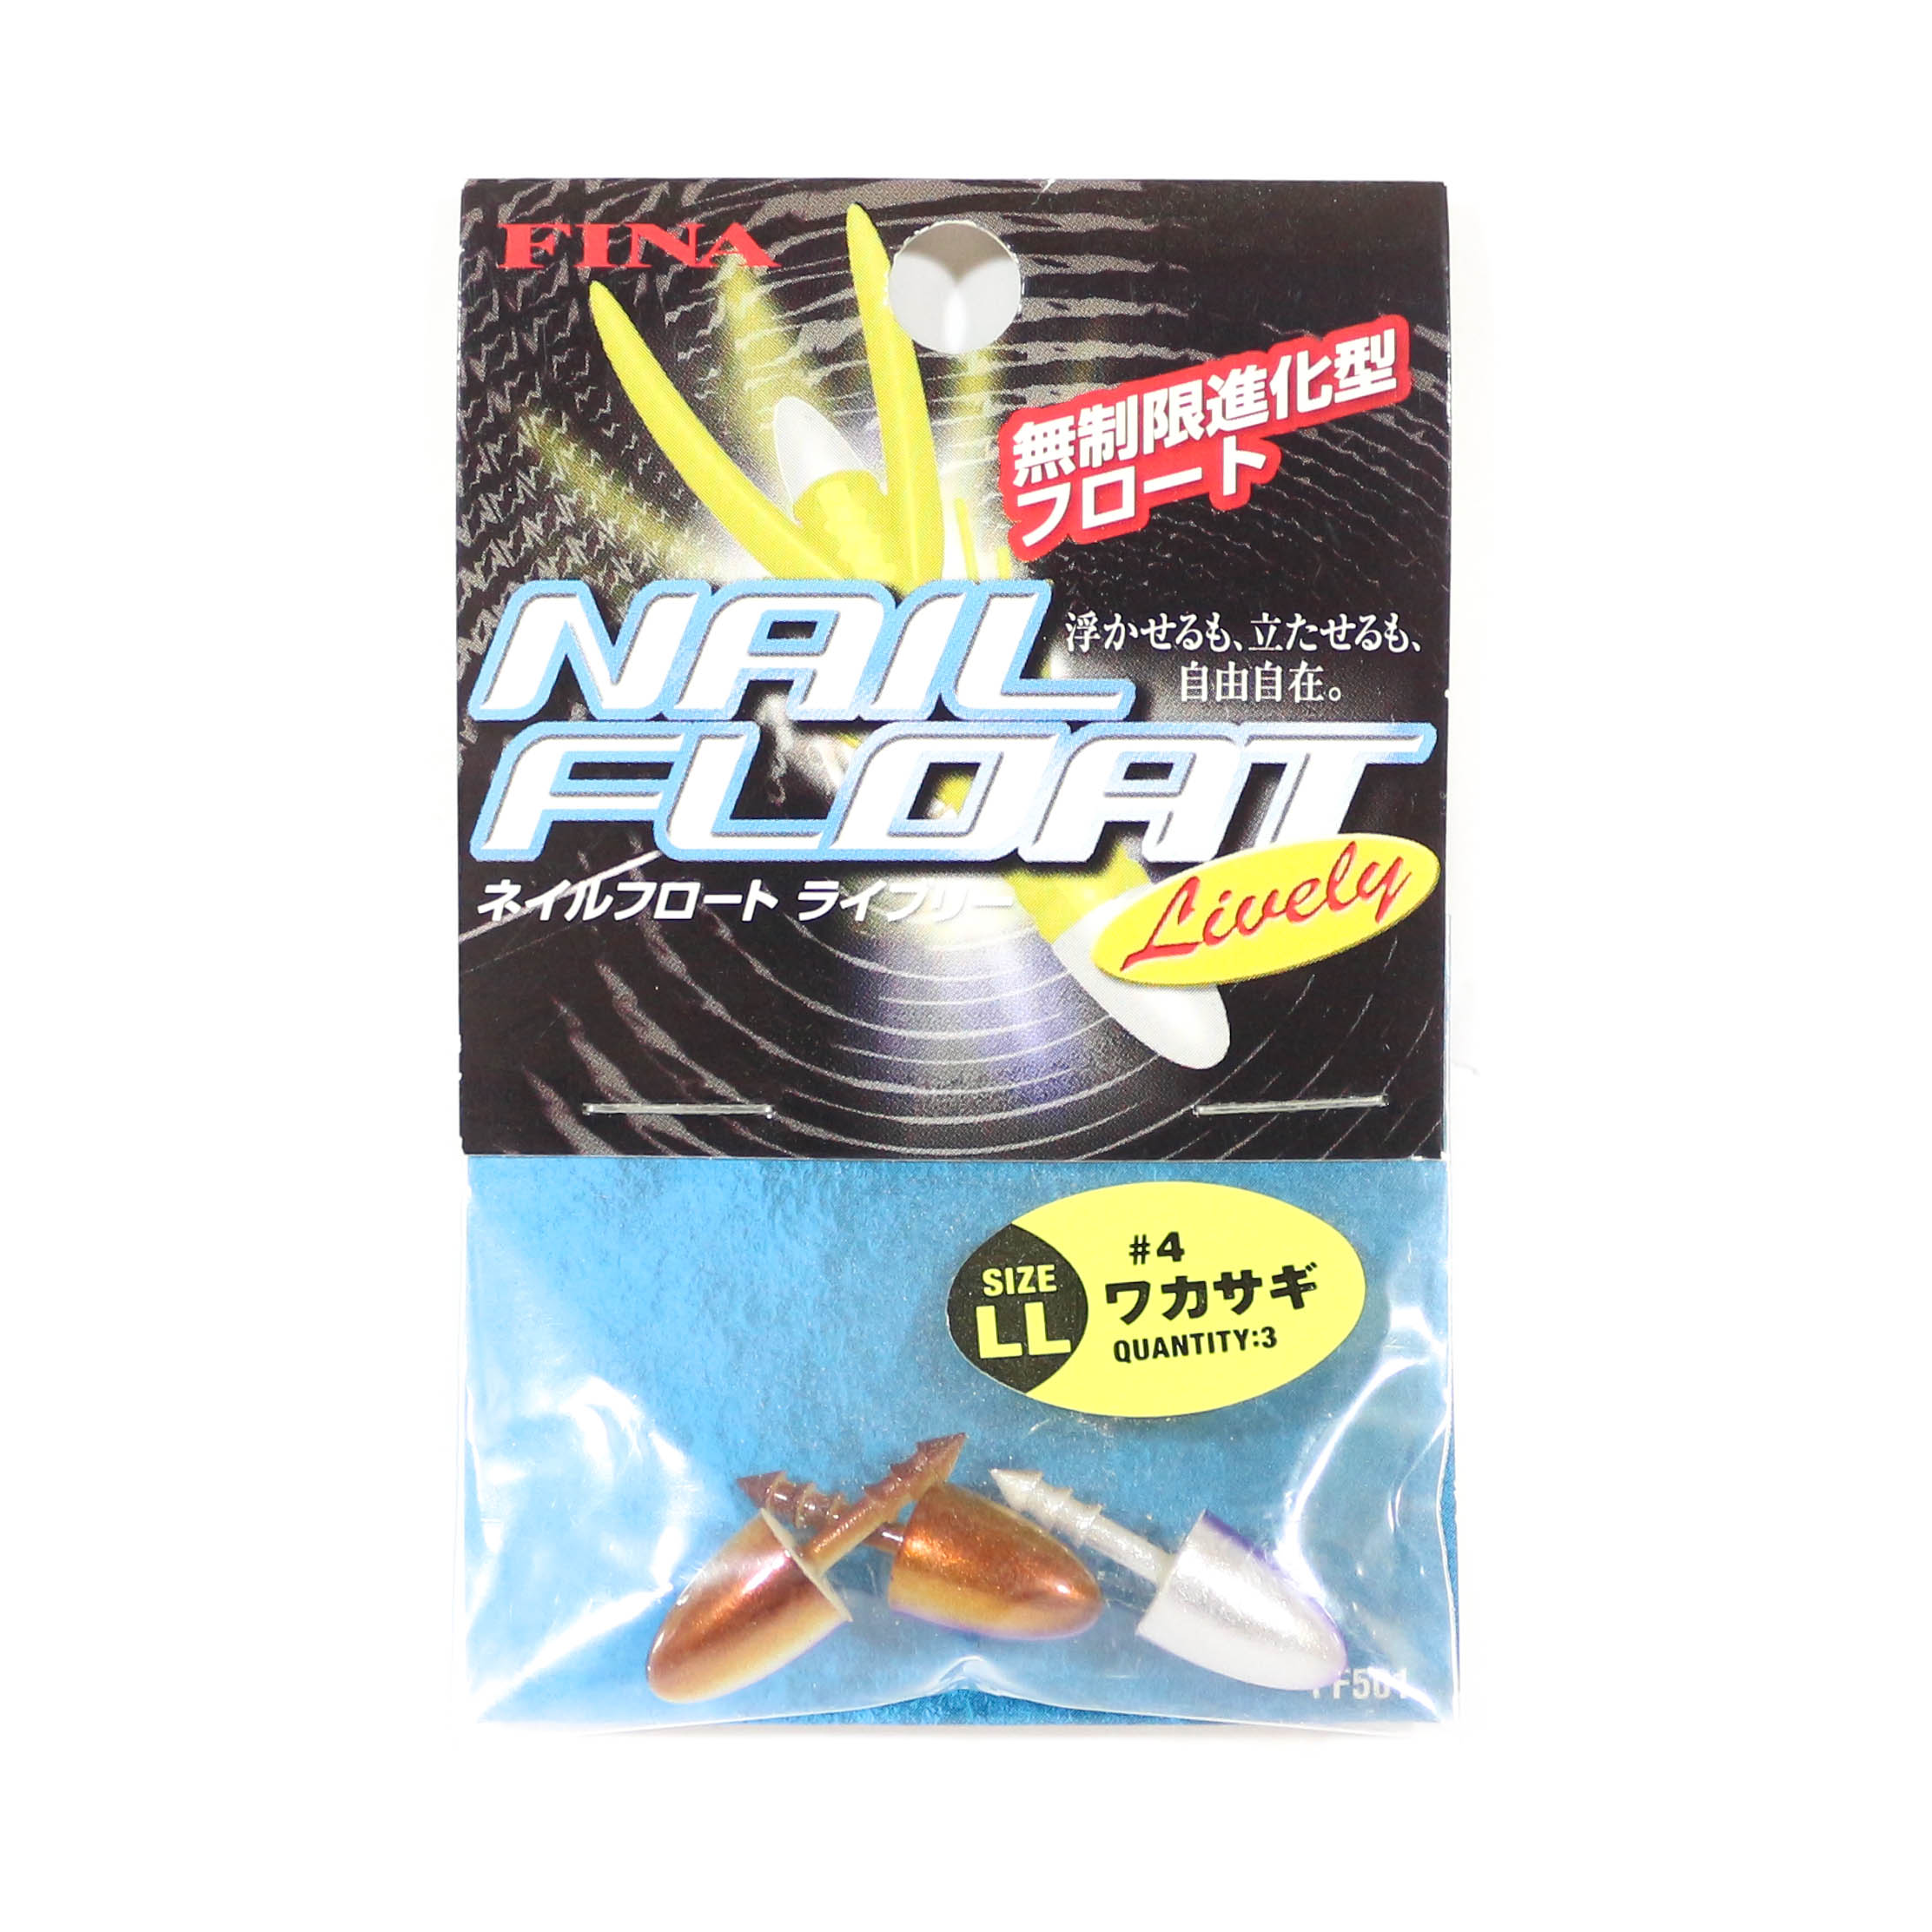 Fina FF501 Nail Float LivelySize LL for Hook Size 4 Purple (7526)